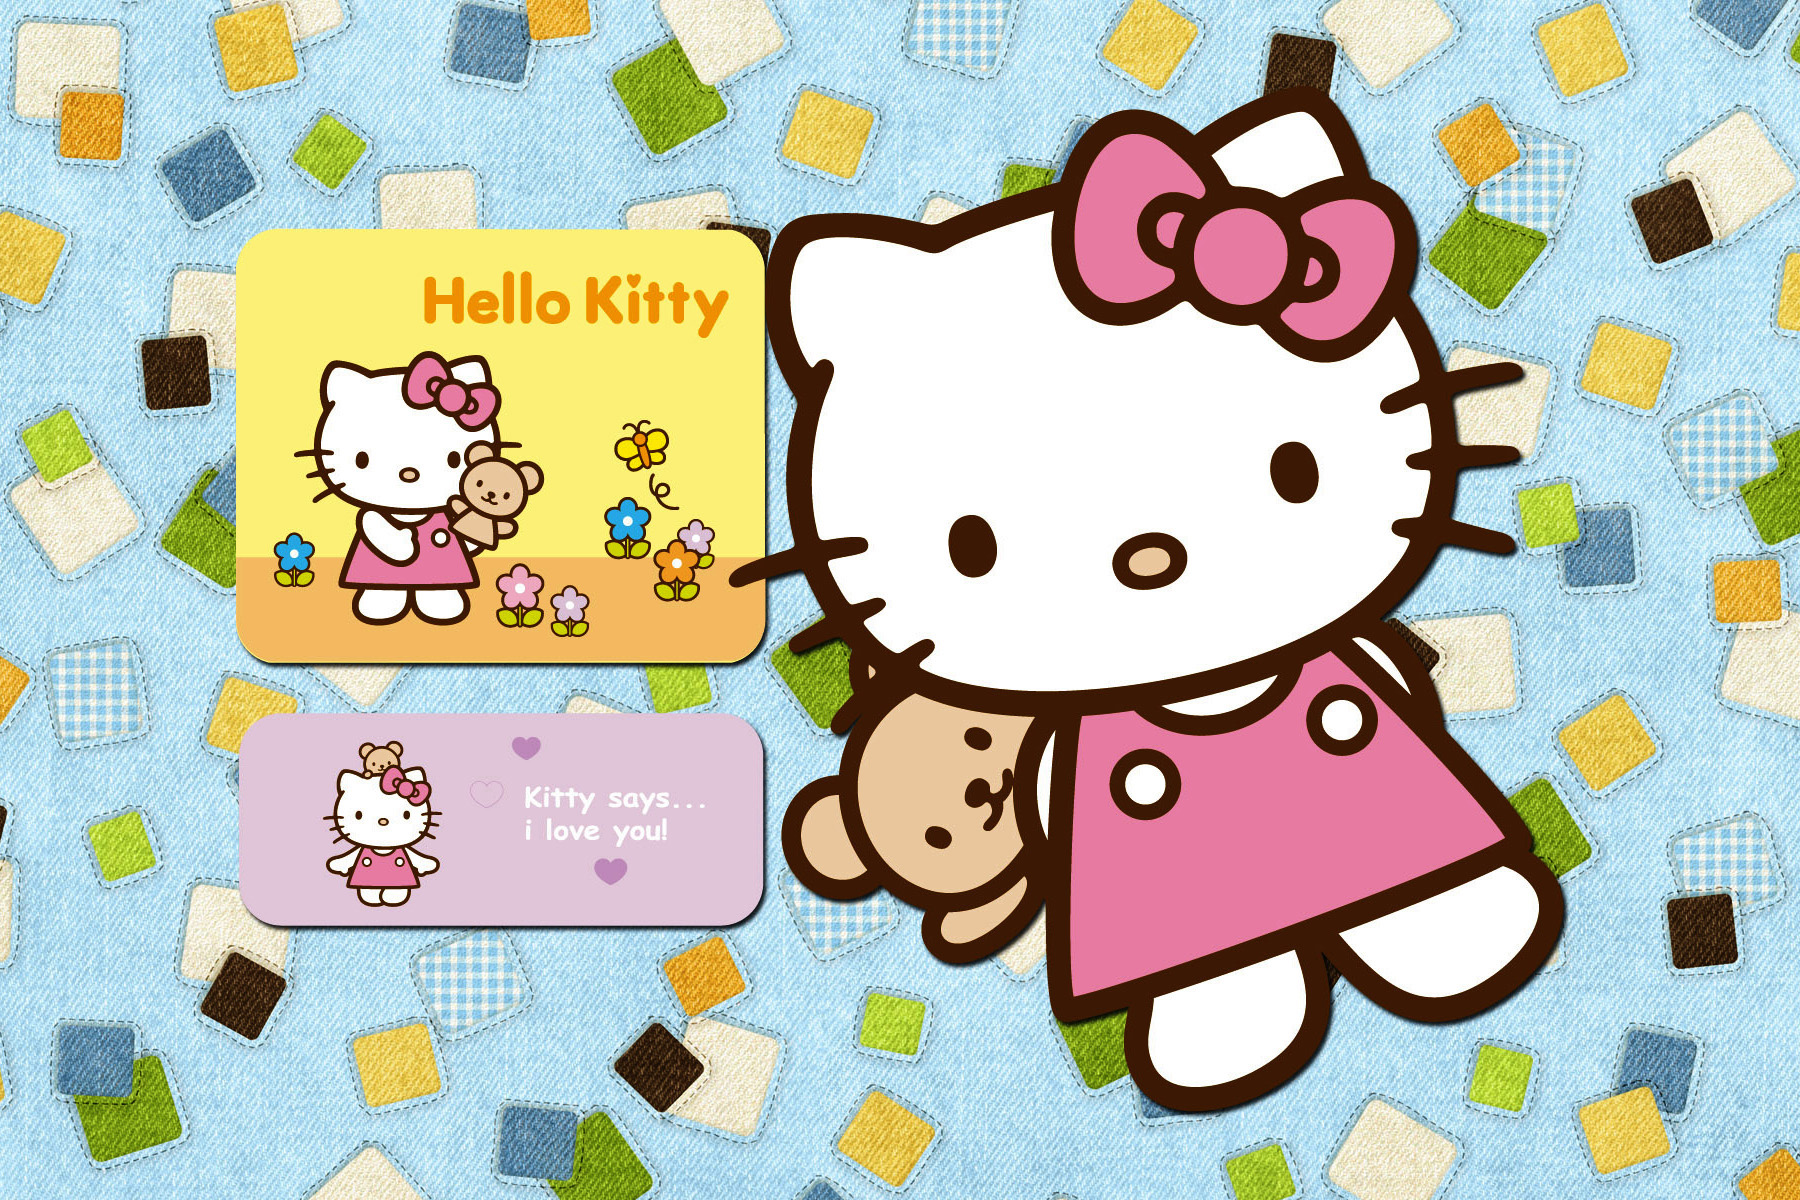 hello kitty and sanrio printable picture postcards 6 x 4. Black Bedroom Furniture Sets. Home Design Ideas